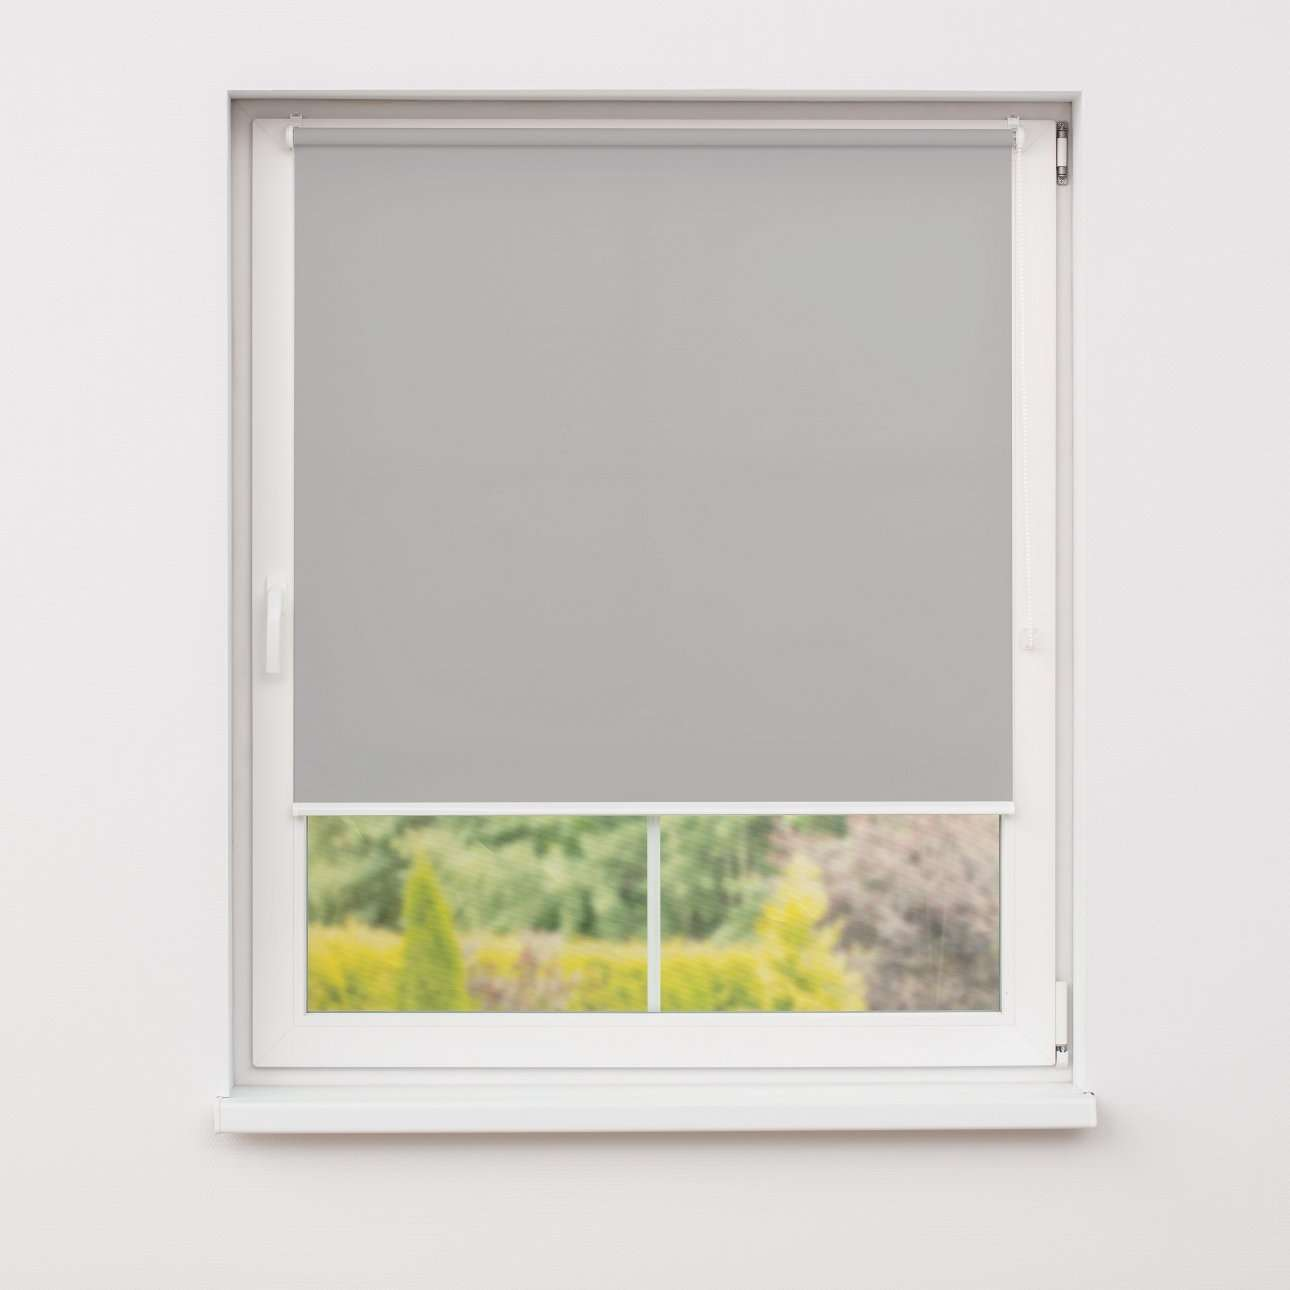 Mini blackout roller blind in collection Roller blind blackout, fabric: 054